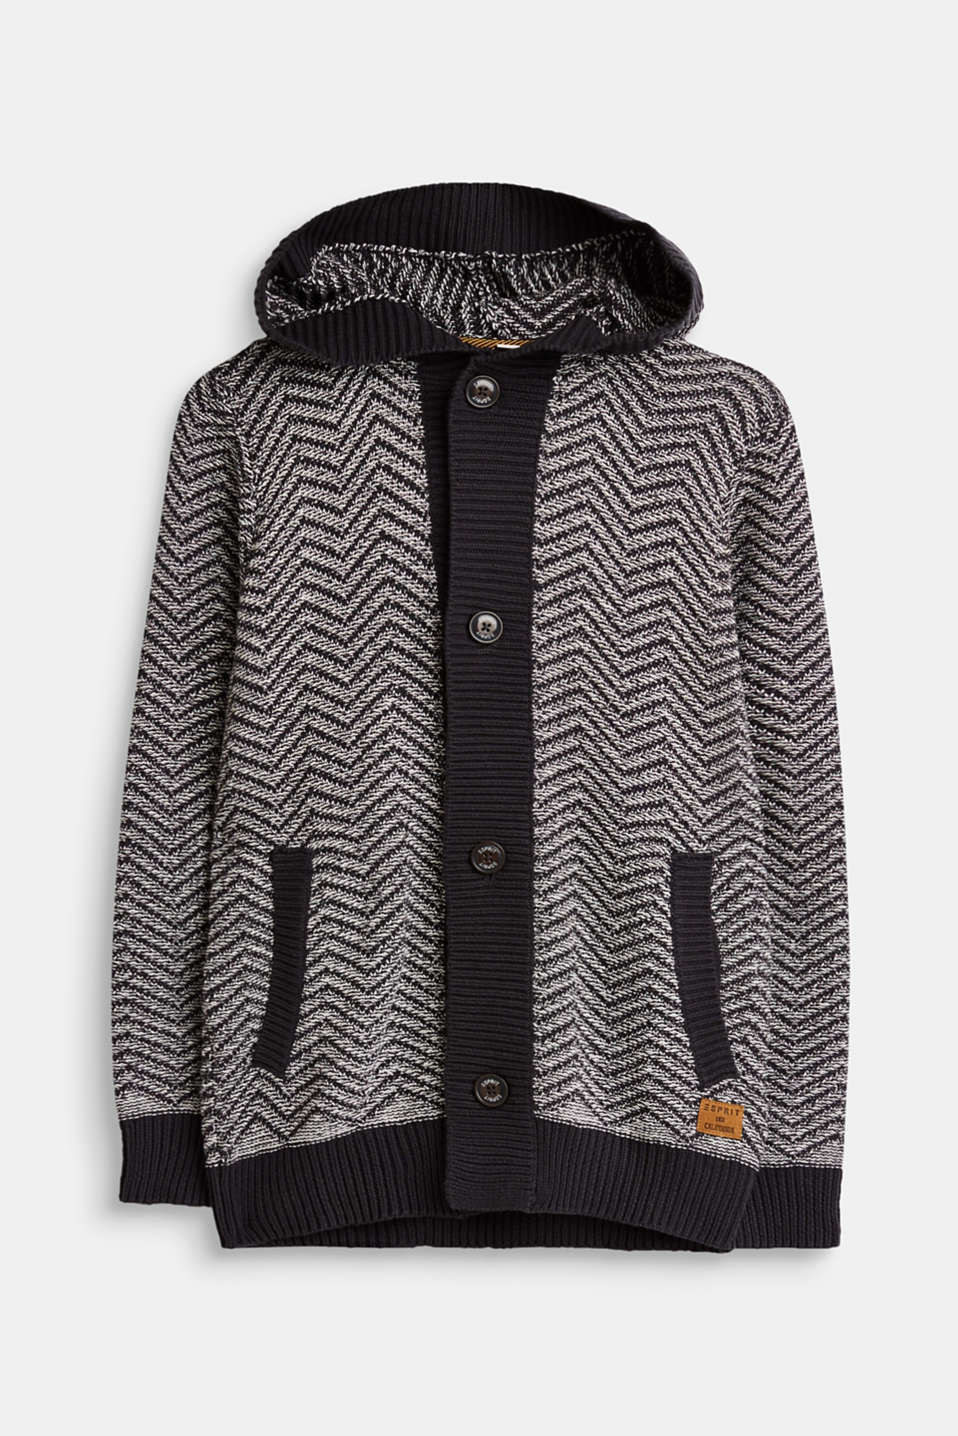 Esprit - Textured, hooded cardigan made of cotton